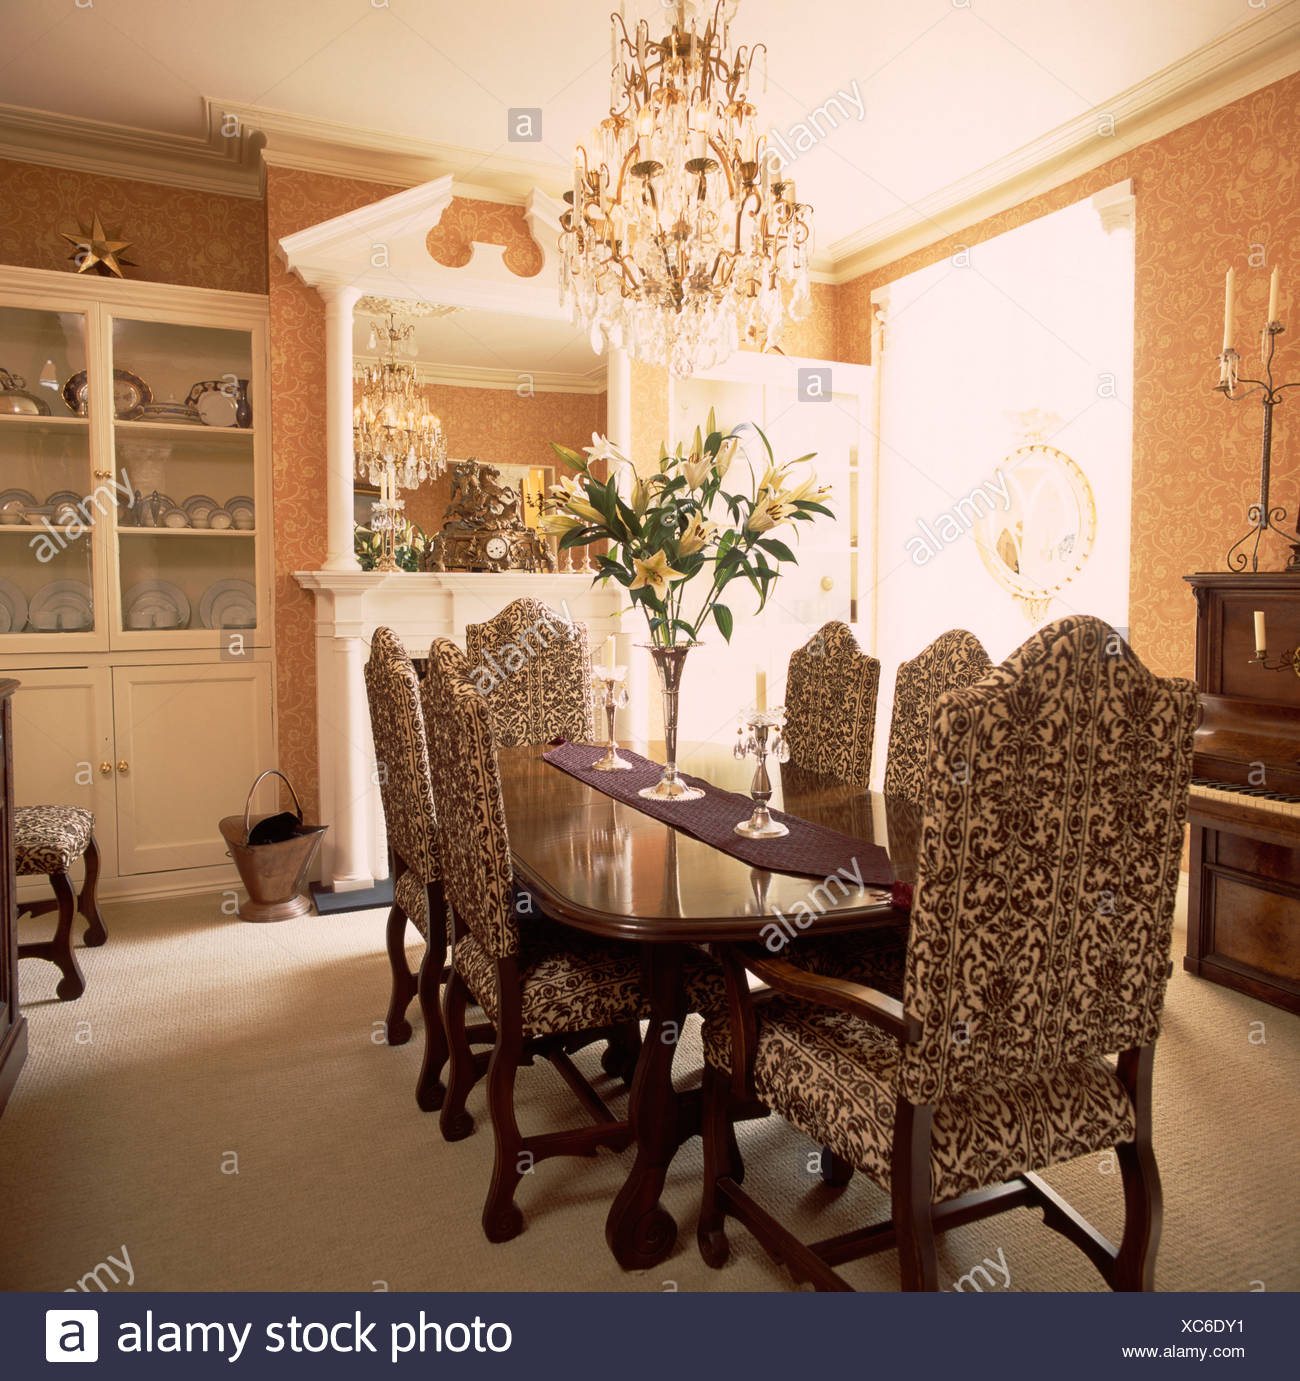 Chandelier Above Tapestry Upholstered Chairs And Mahogany ...